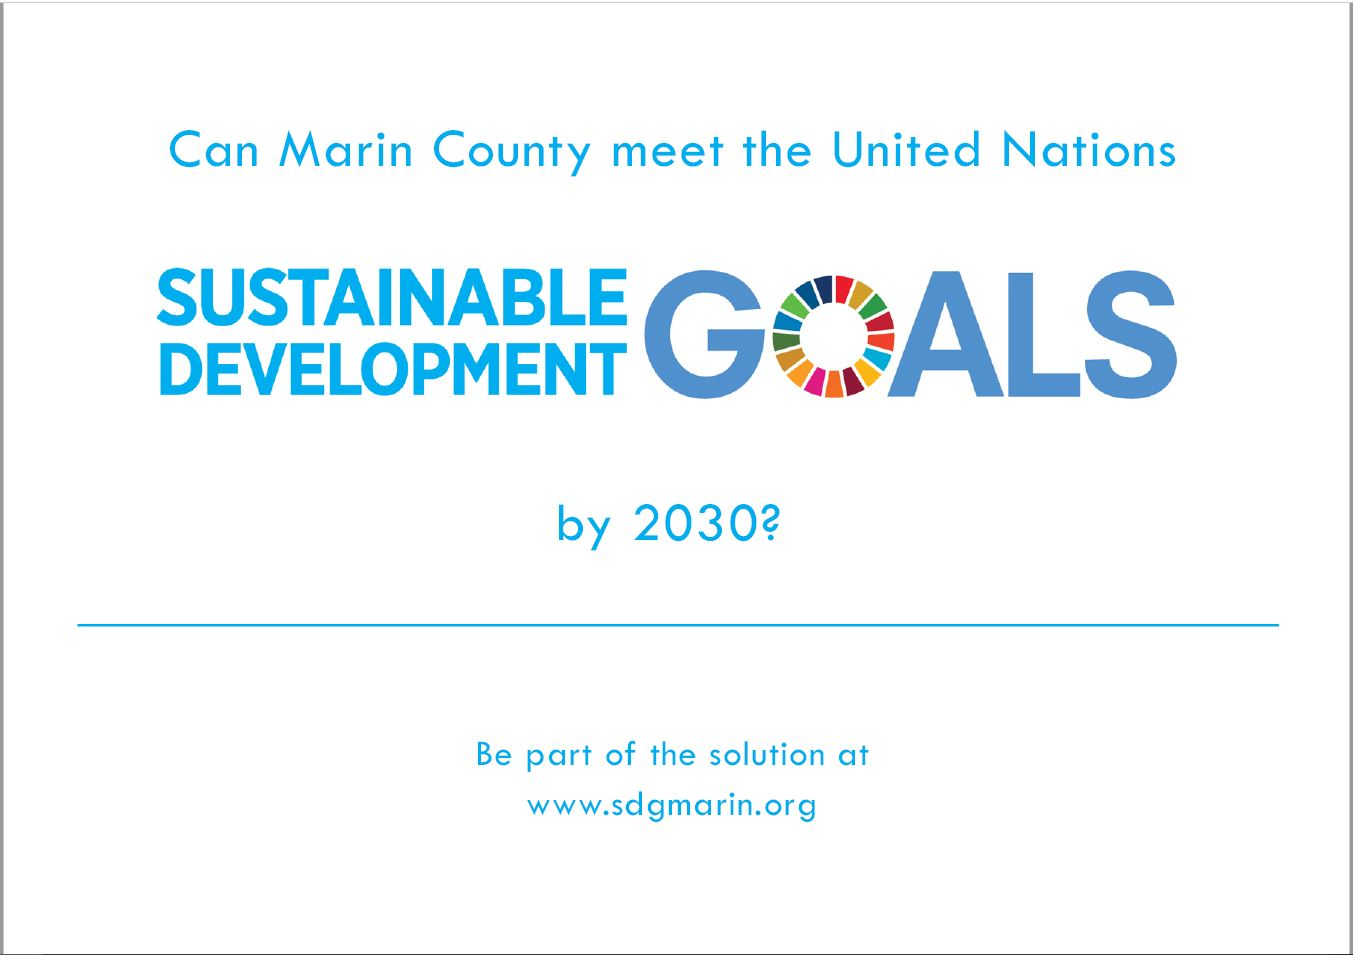 Post Card Image for SDGMarin.org